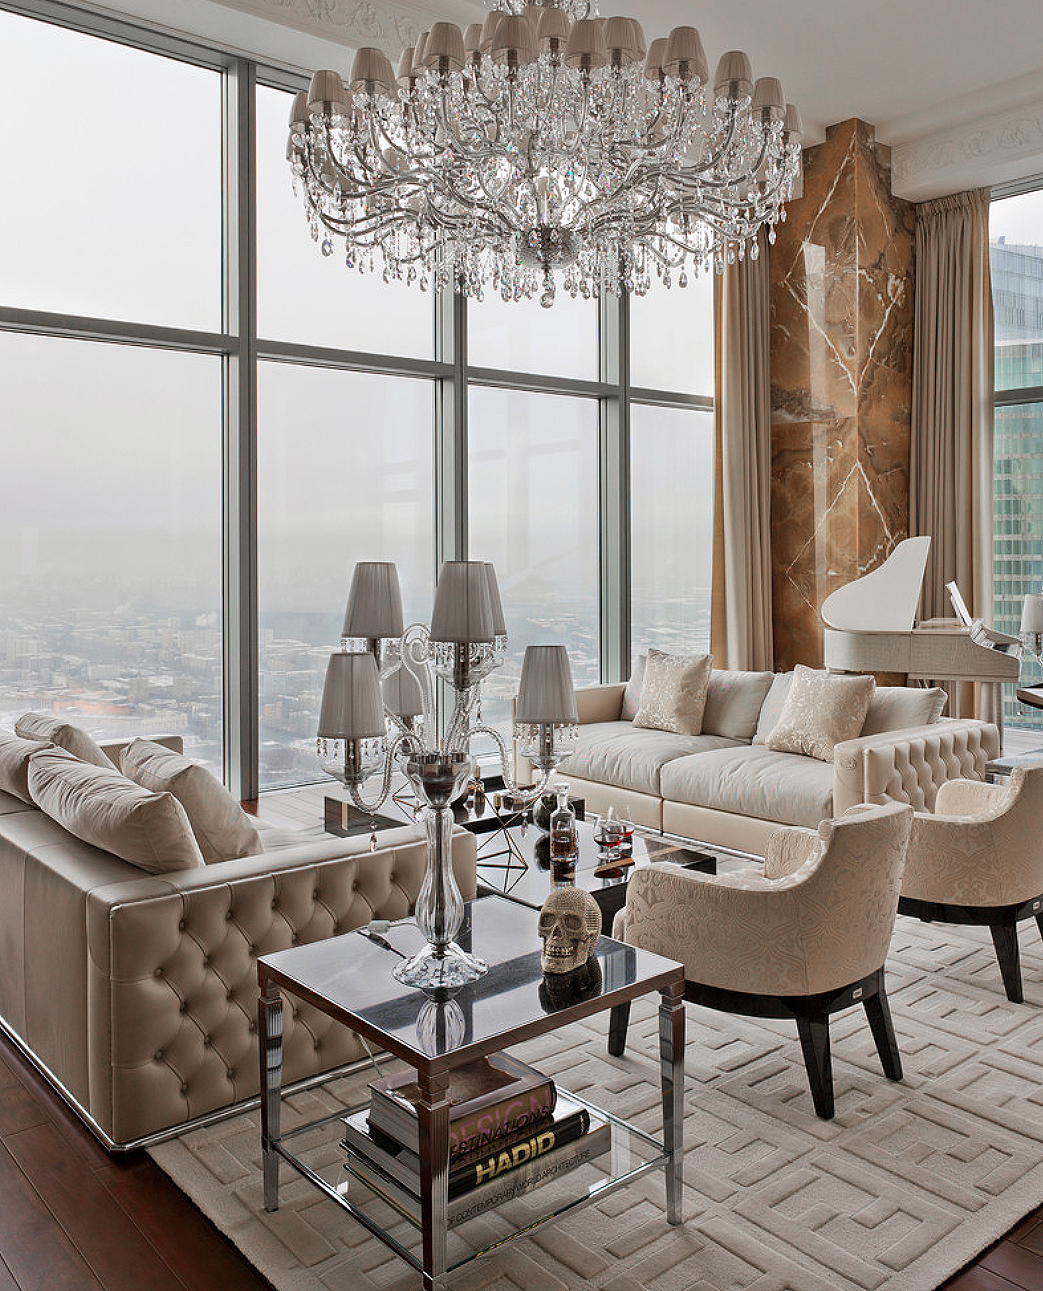 Gorgeous Luxury Glam Style Beige Living Room Decor With Beige Velvet Tufted Sofas A Contemporary Decor Living Room Apartment Interior Design Beige Living Rooms